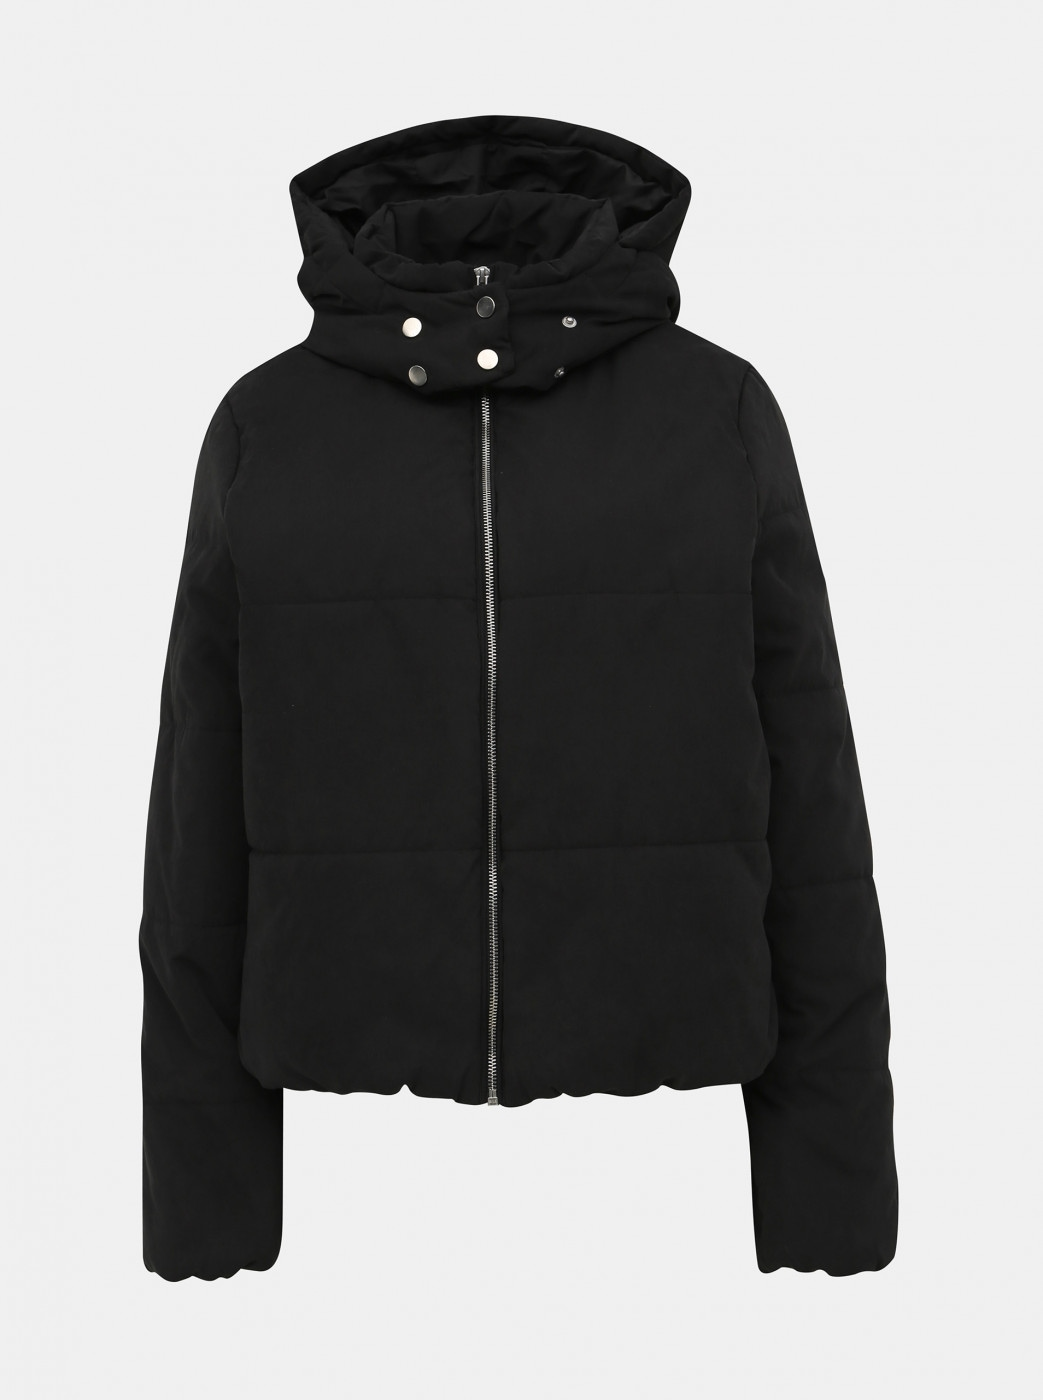 VILLA Leyda Black Quilted Winter Jacket